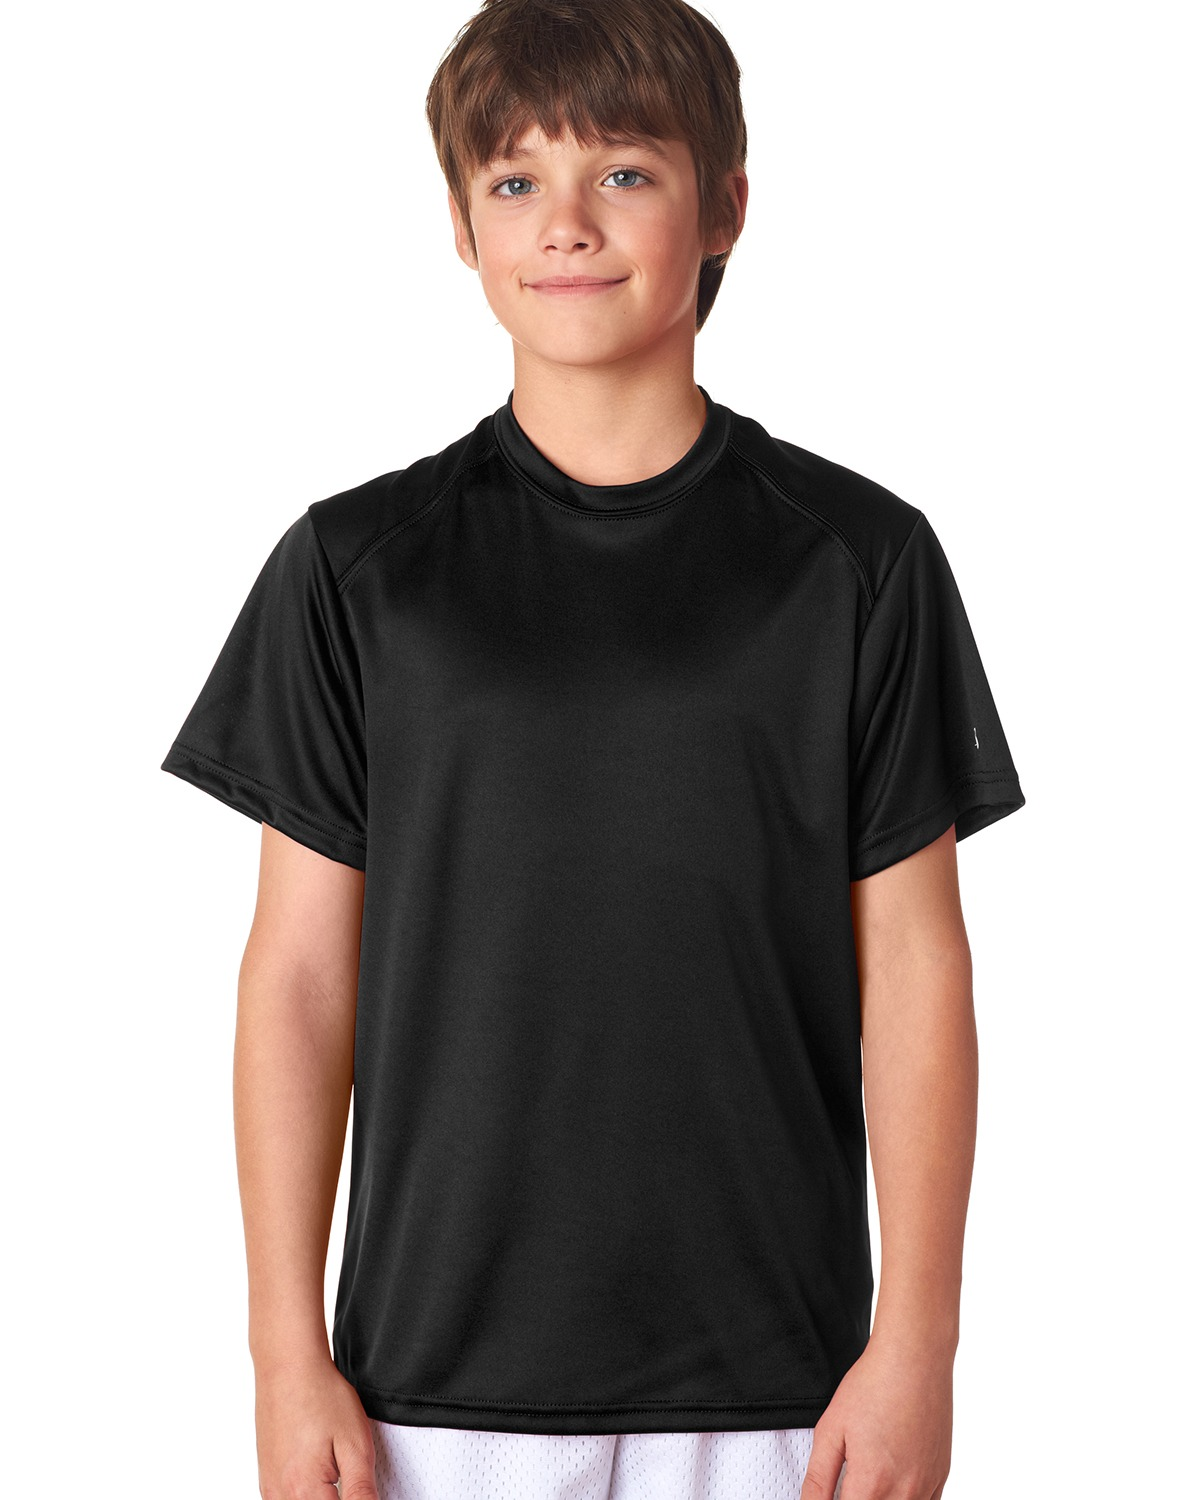 Badger 2120 Boys BCore short sleeve Performance Tee at GotApparel